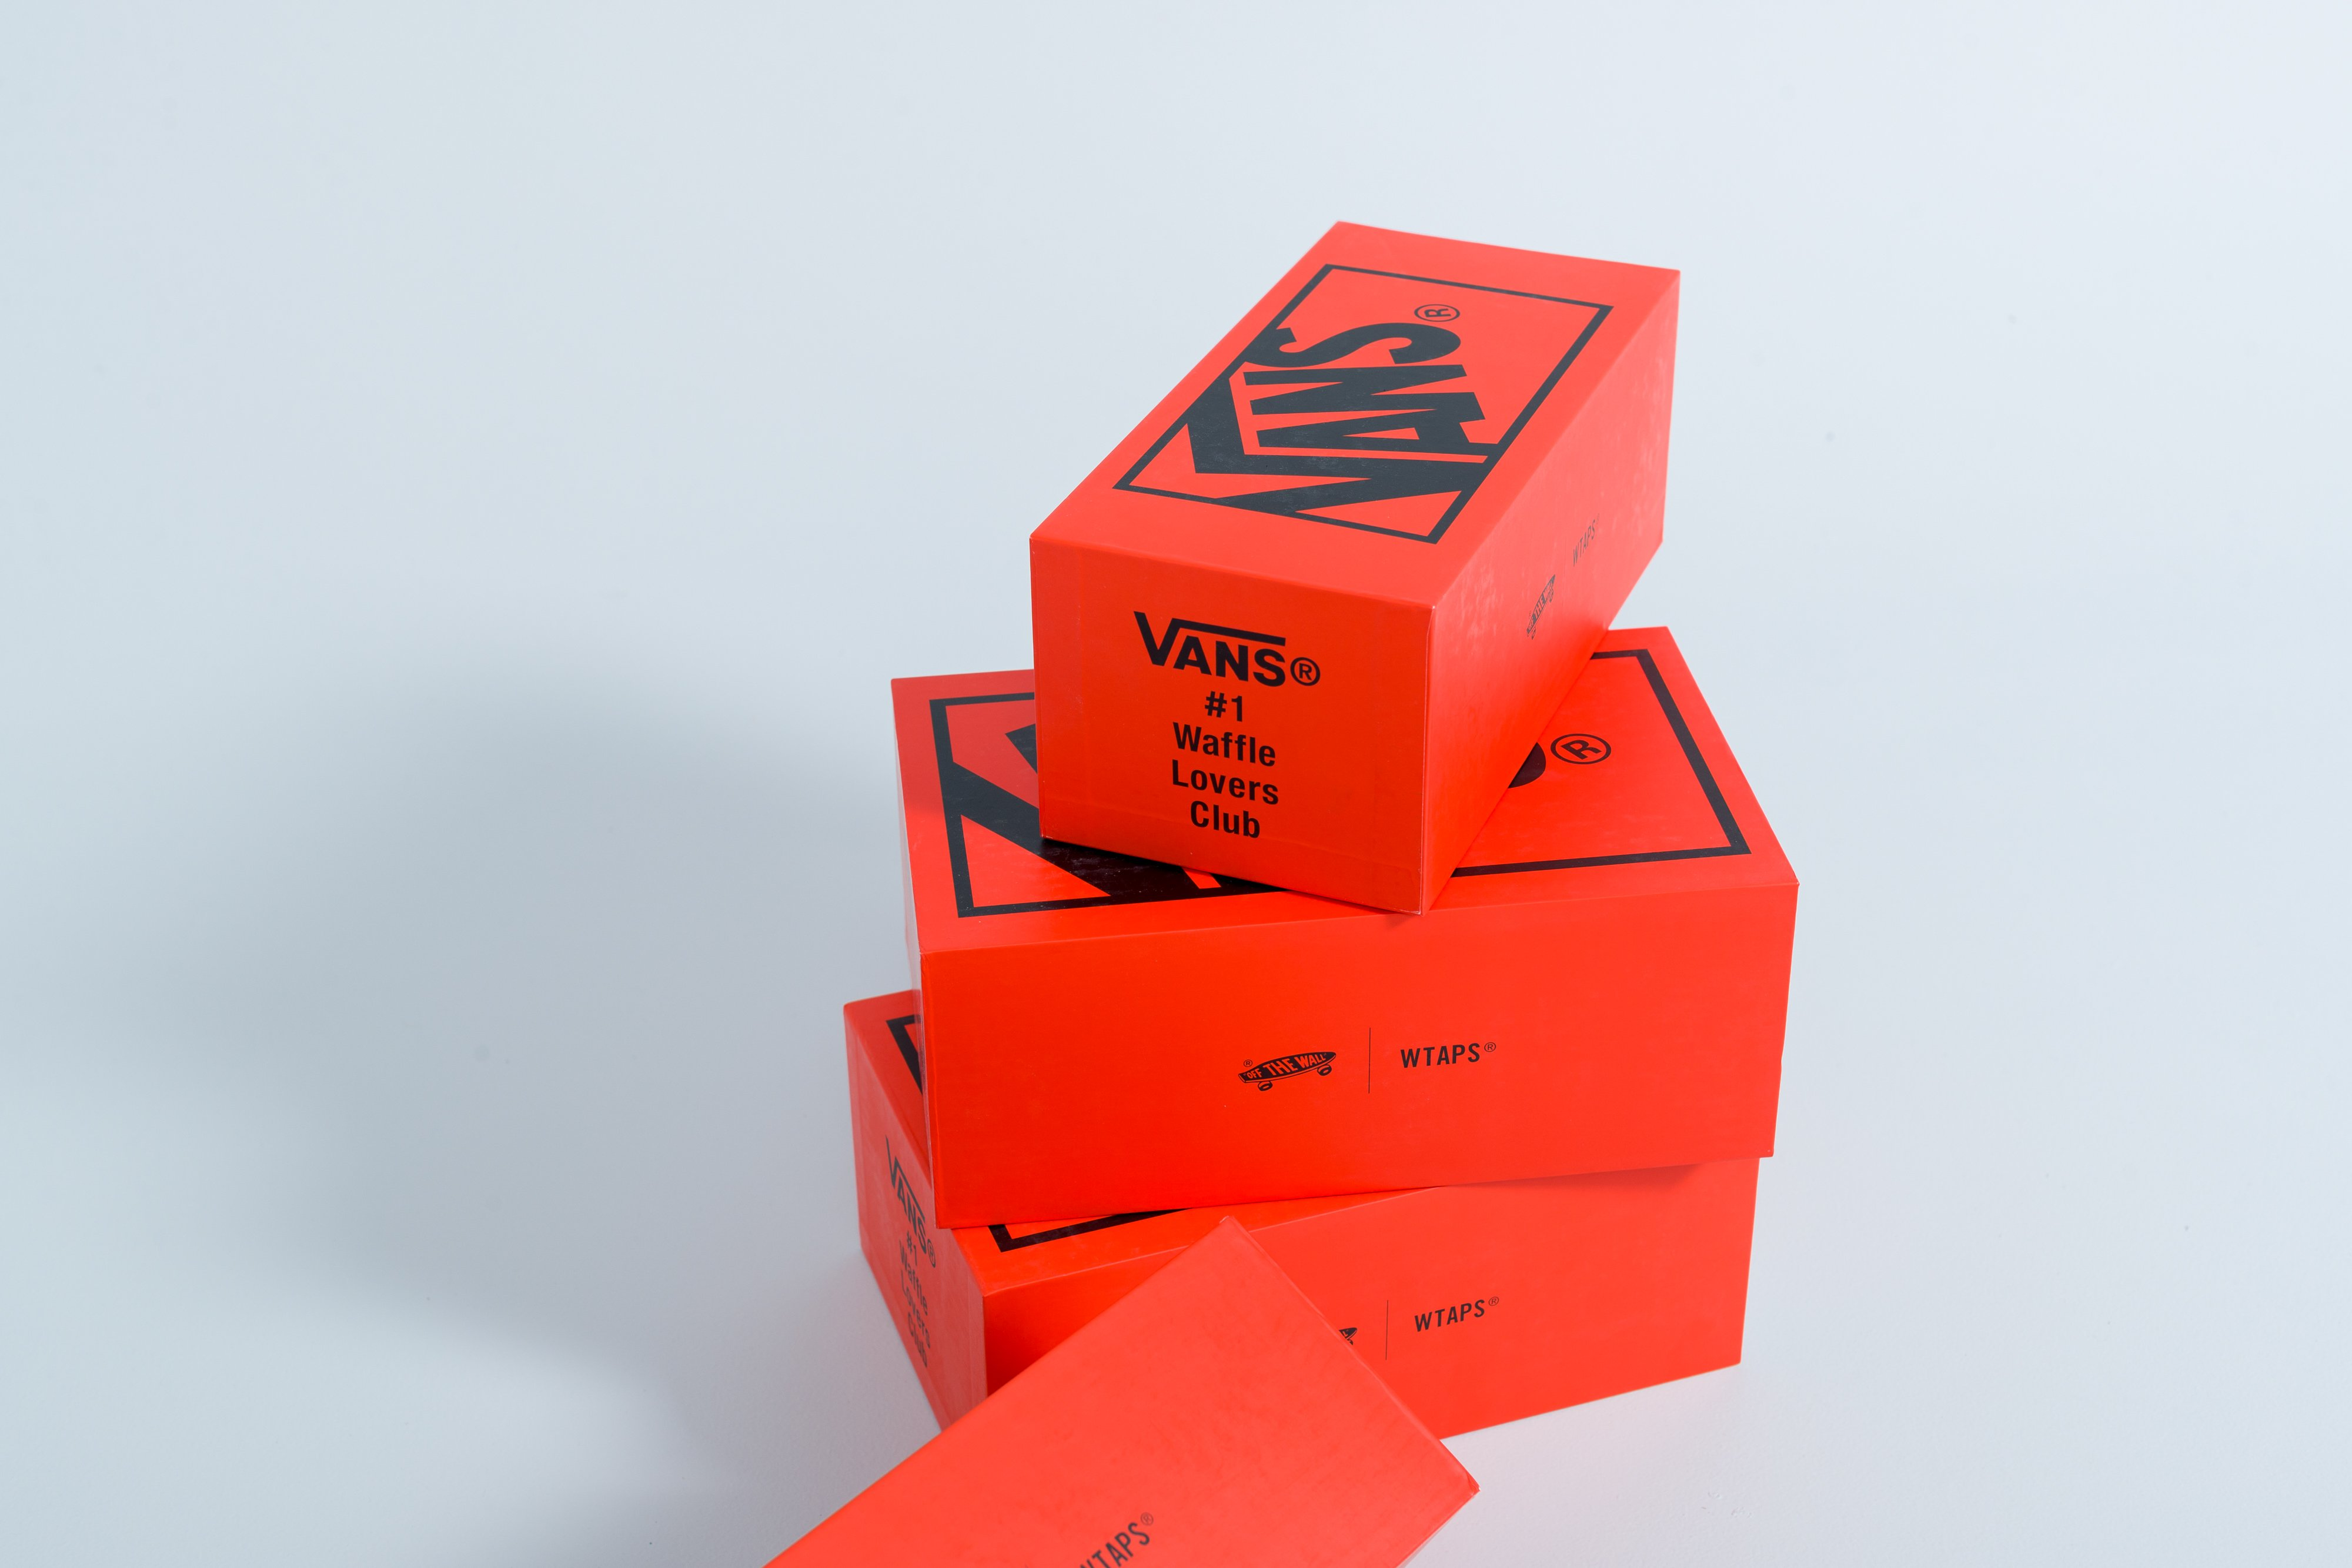 Up There Launches - Vans Vault X WTAPS